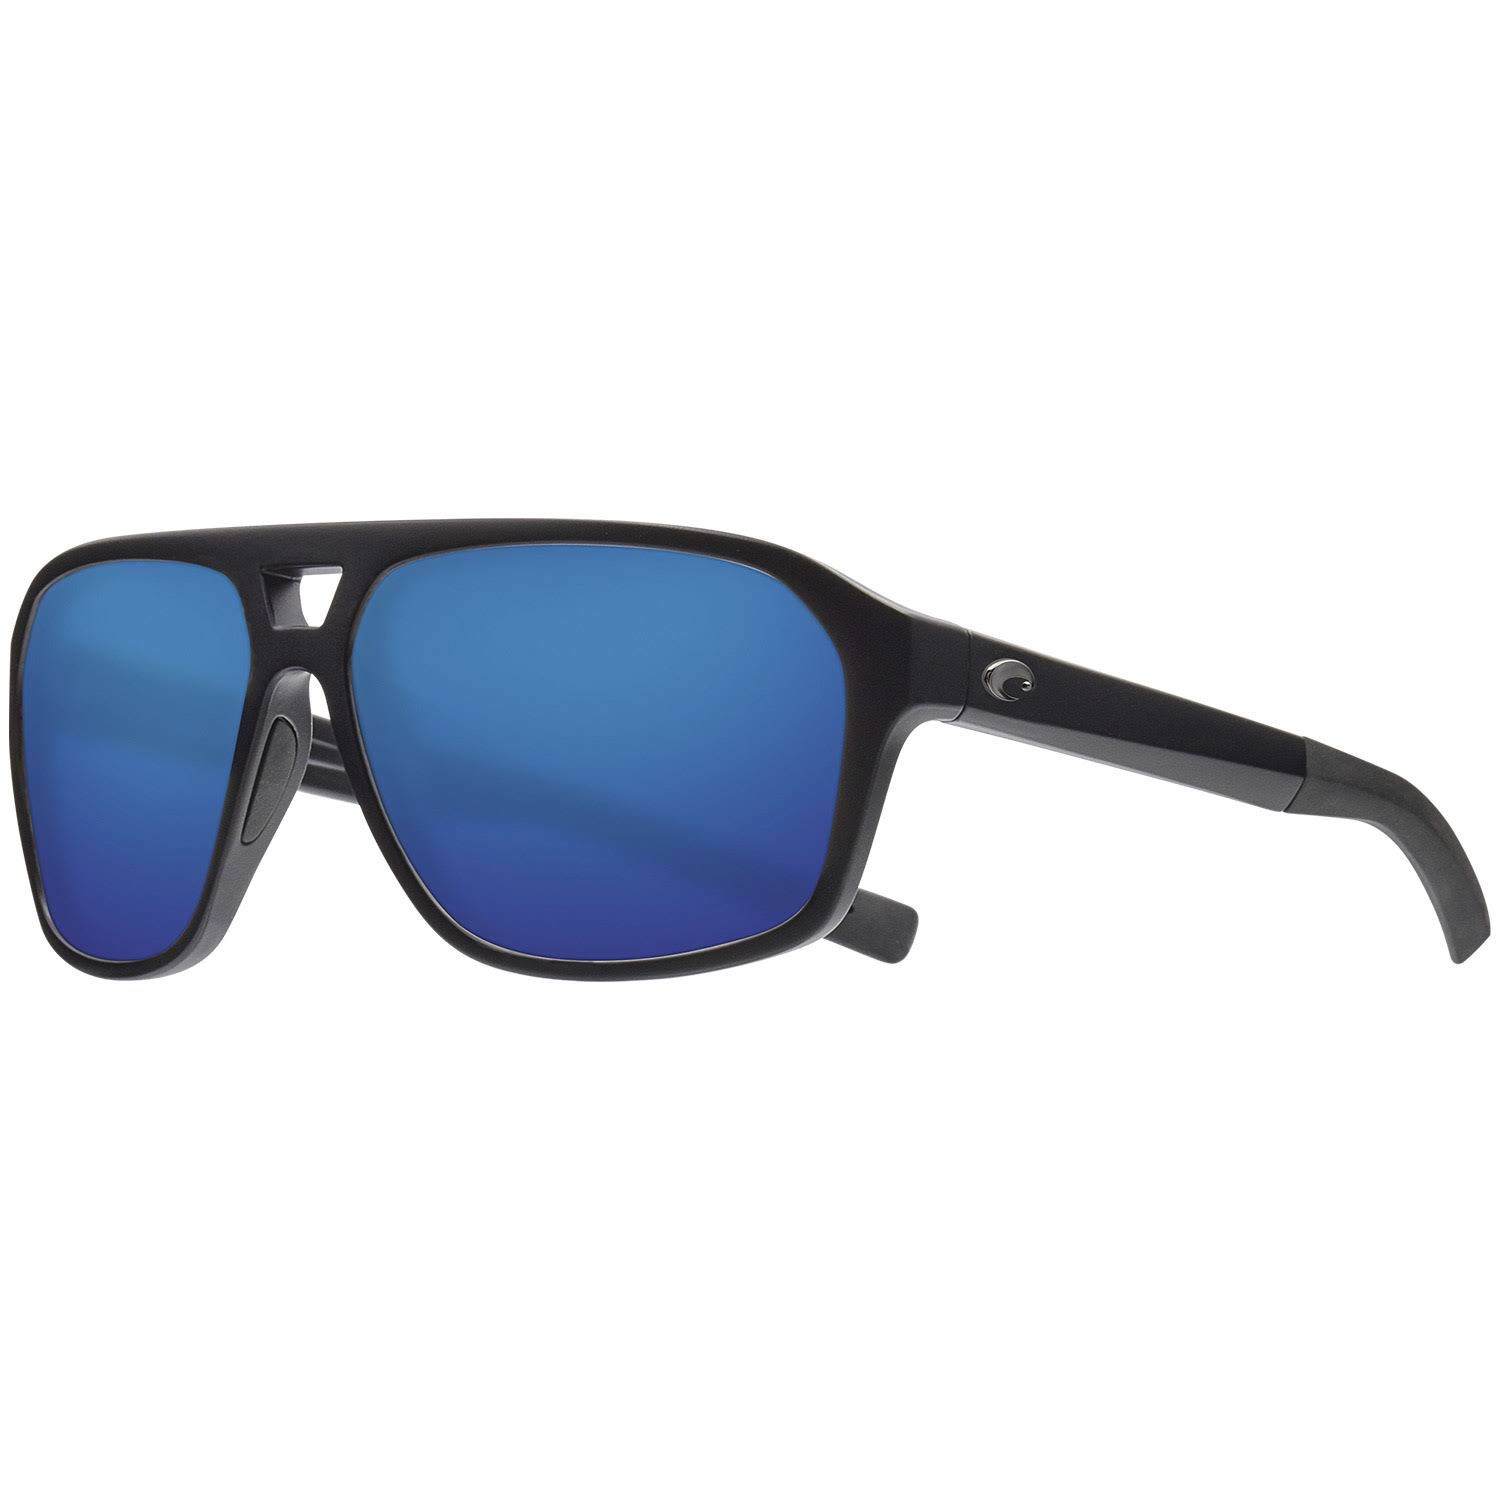 Costa Switchfoot Ocearch Polarized Sunglasses, Mens, Matte Black Blue Mirror